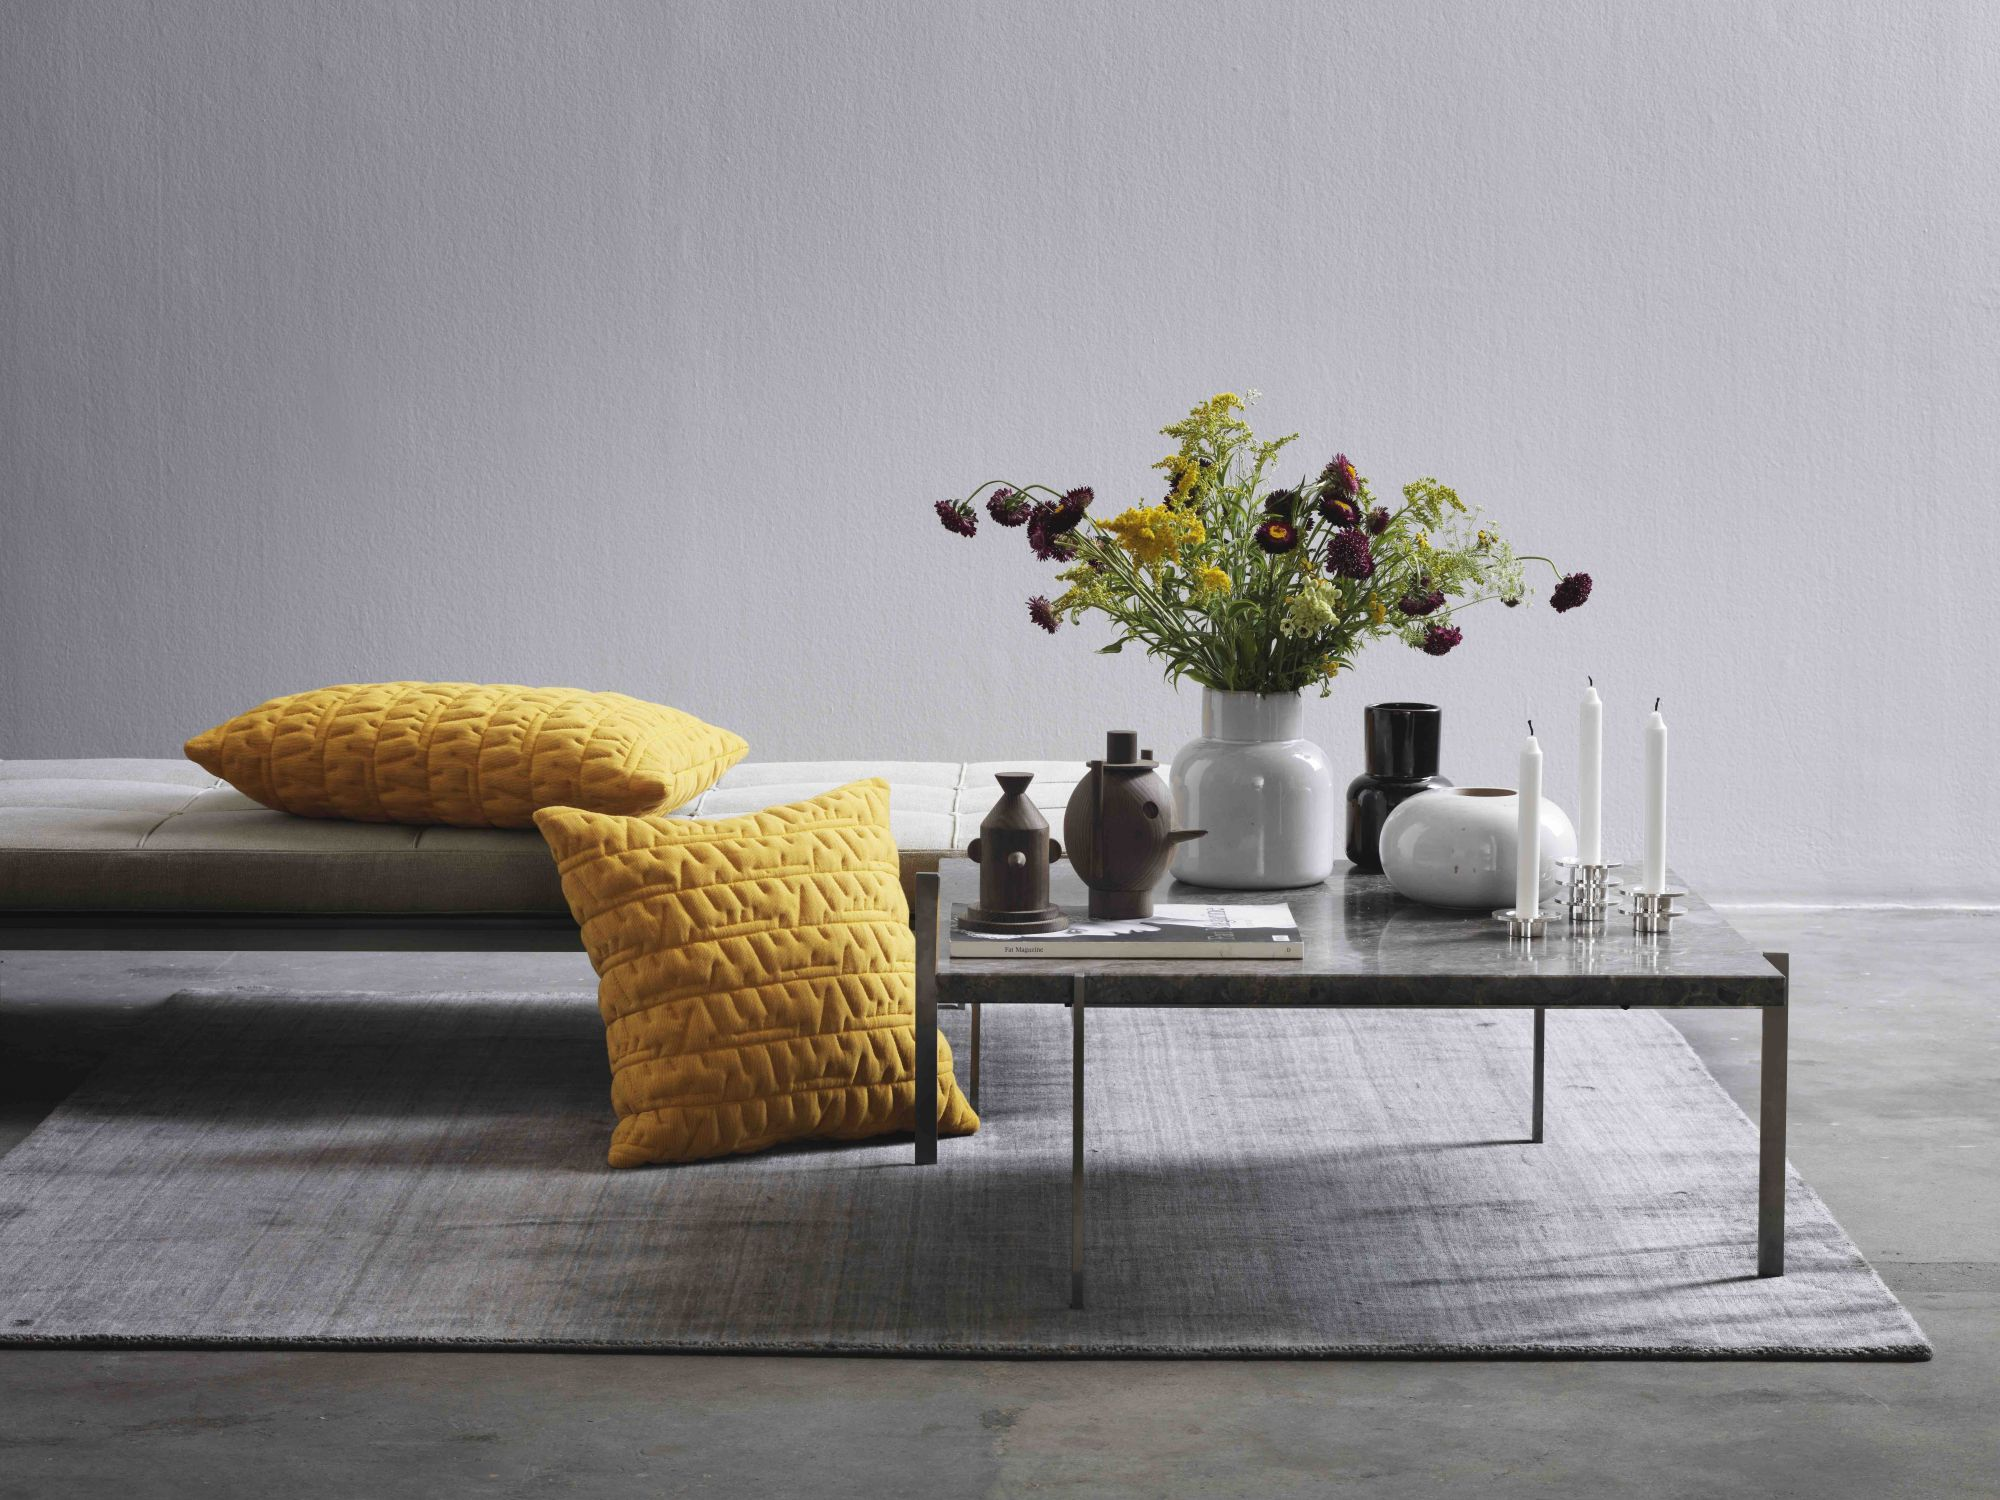 17 Ways To Decorate With The Pantone Colour of the Year 2021